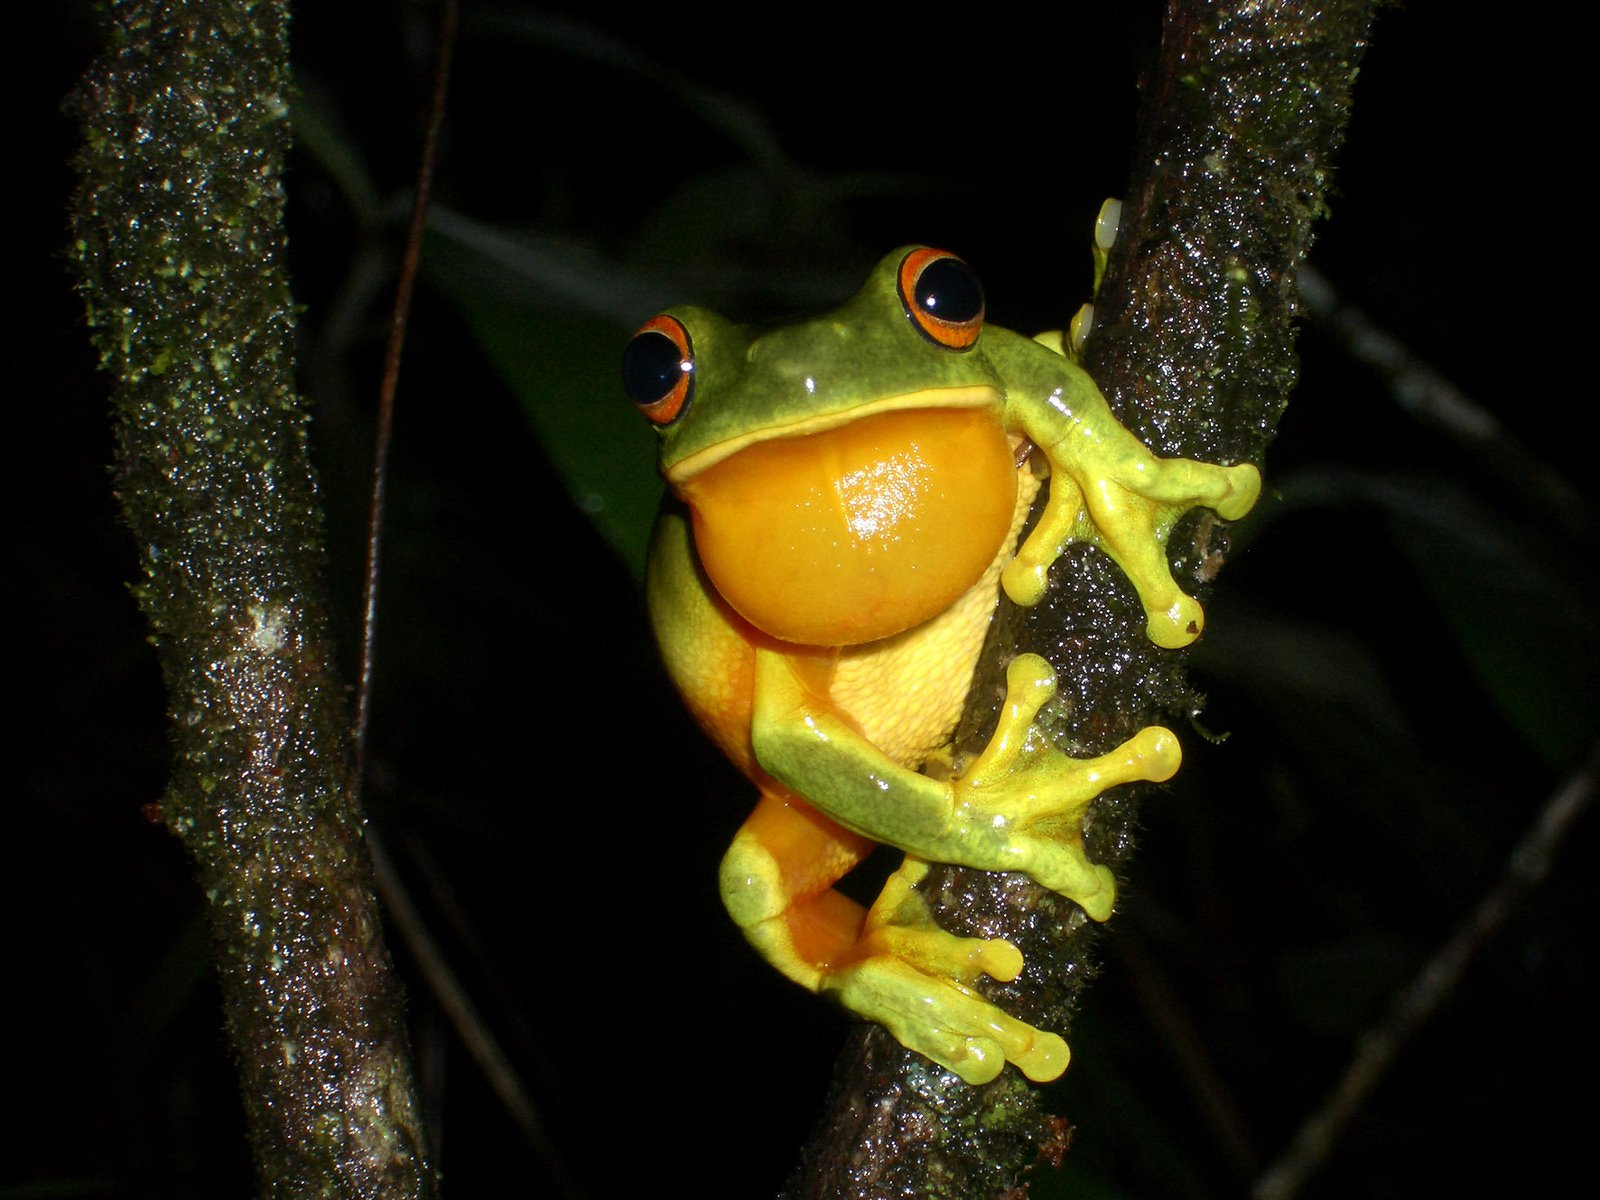 Male Orange-thighed Frog (Litoria xathomera)